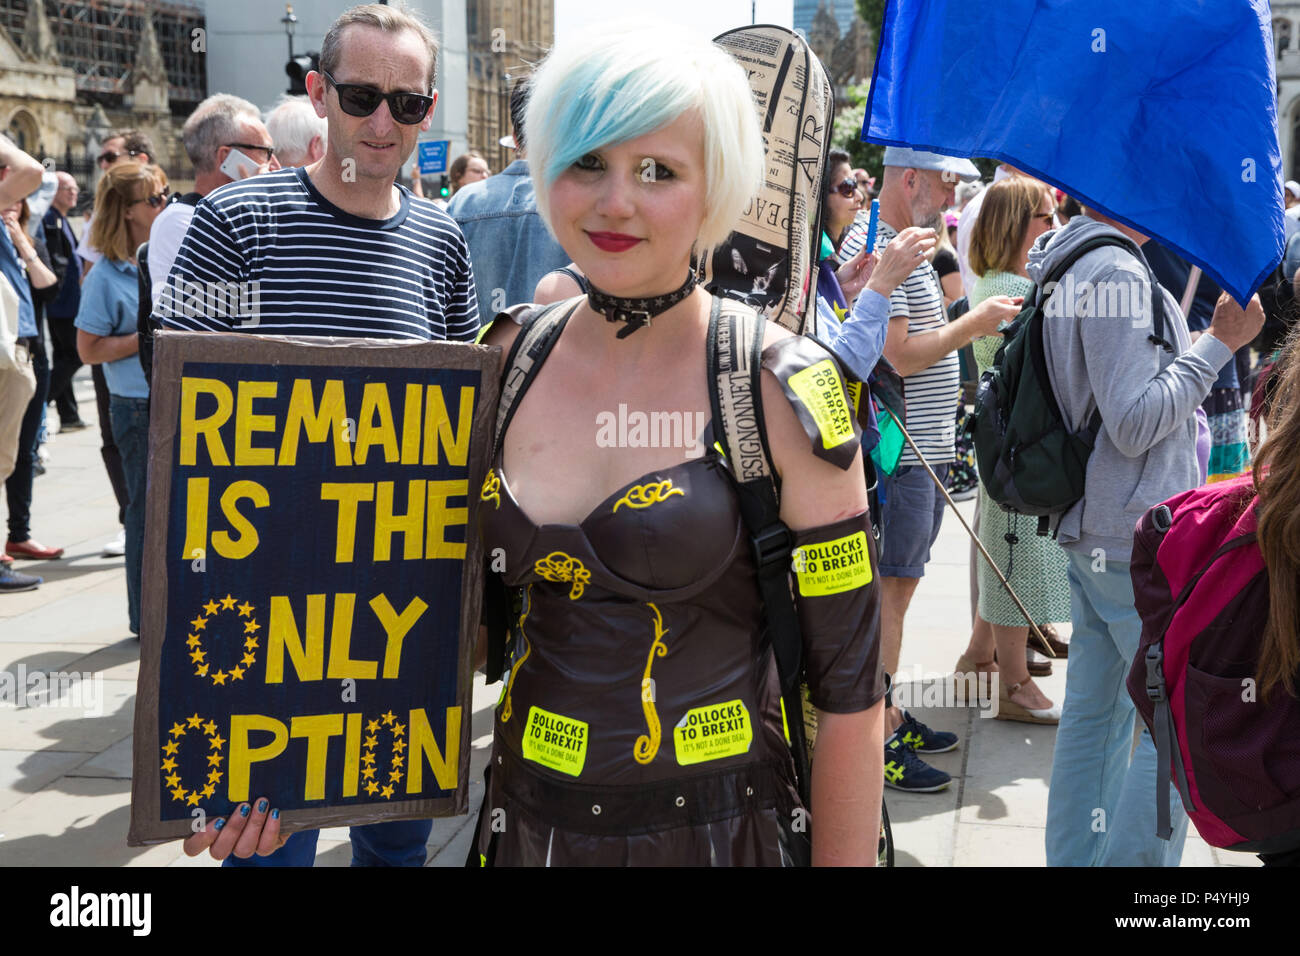 London, UK. 23rd June 2018. Madeleina Kay, EU Supergirl, marches through central London with tens of thousands of people representing a coalition of pro-EU groups on the second anniversary of the referendum to call for a 'People's Vote' on any Brexit deal proposed by the Government to manage its future relationship with the European Union. Credit: Mark Kerrison/Alamy Live News - Stock Image